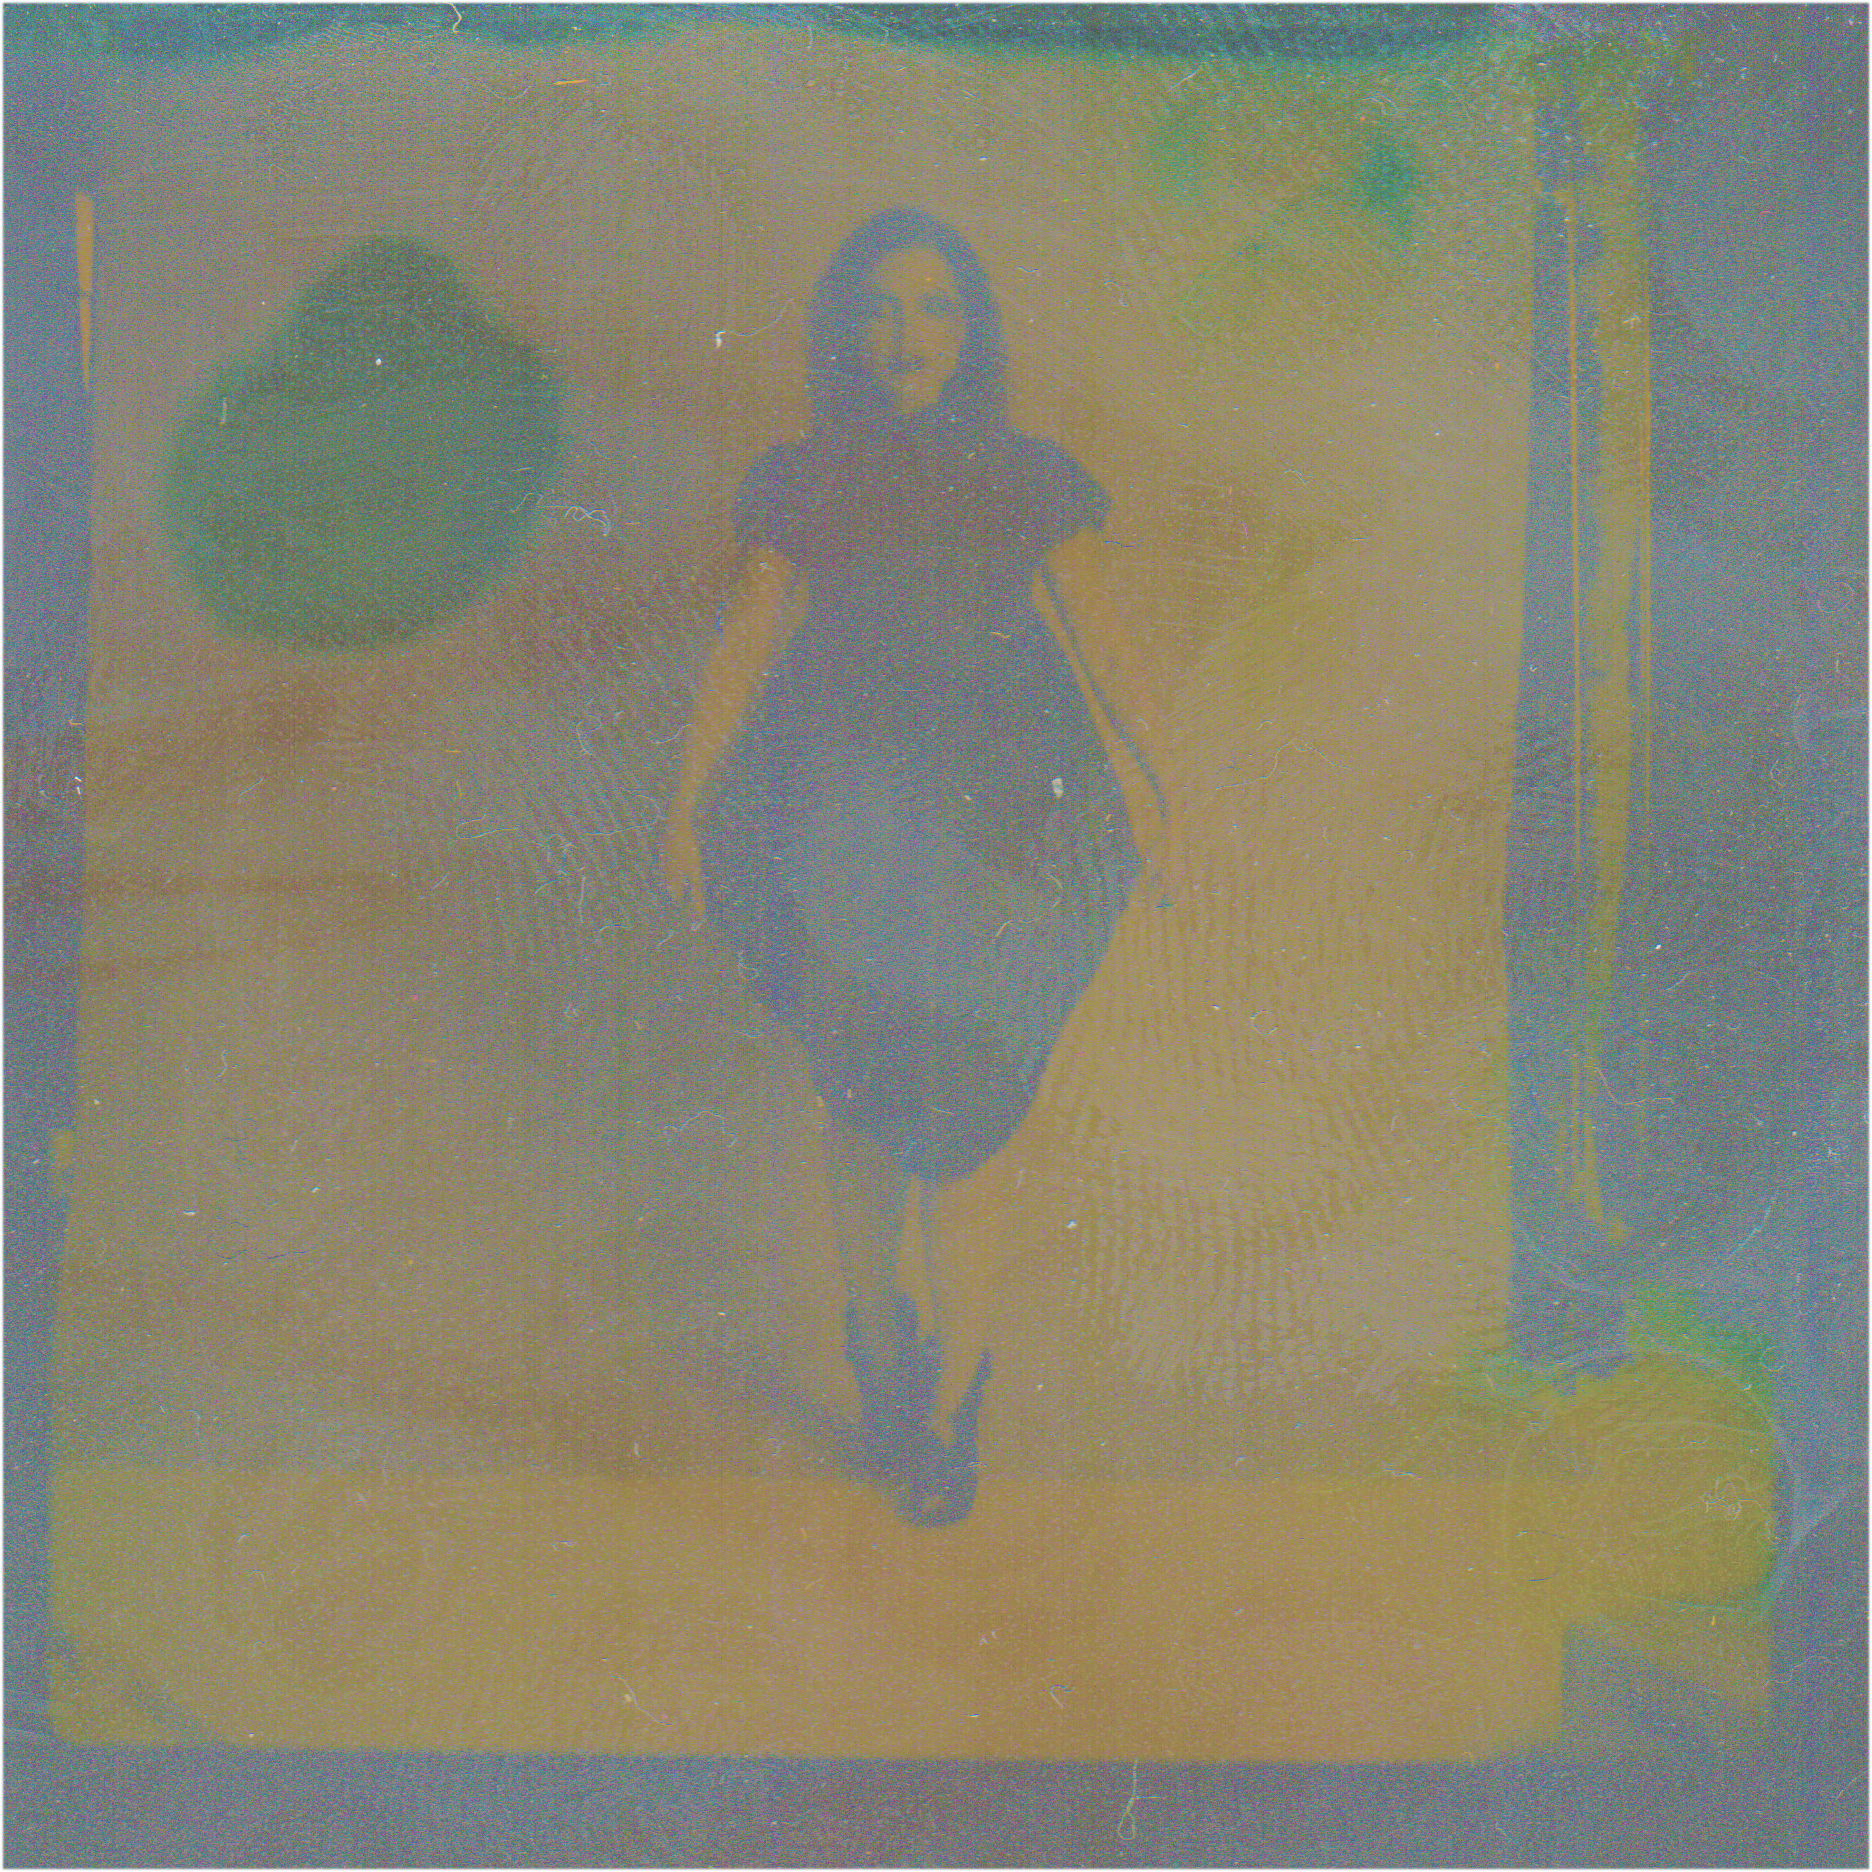 Sofia Bush Negative